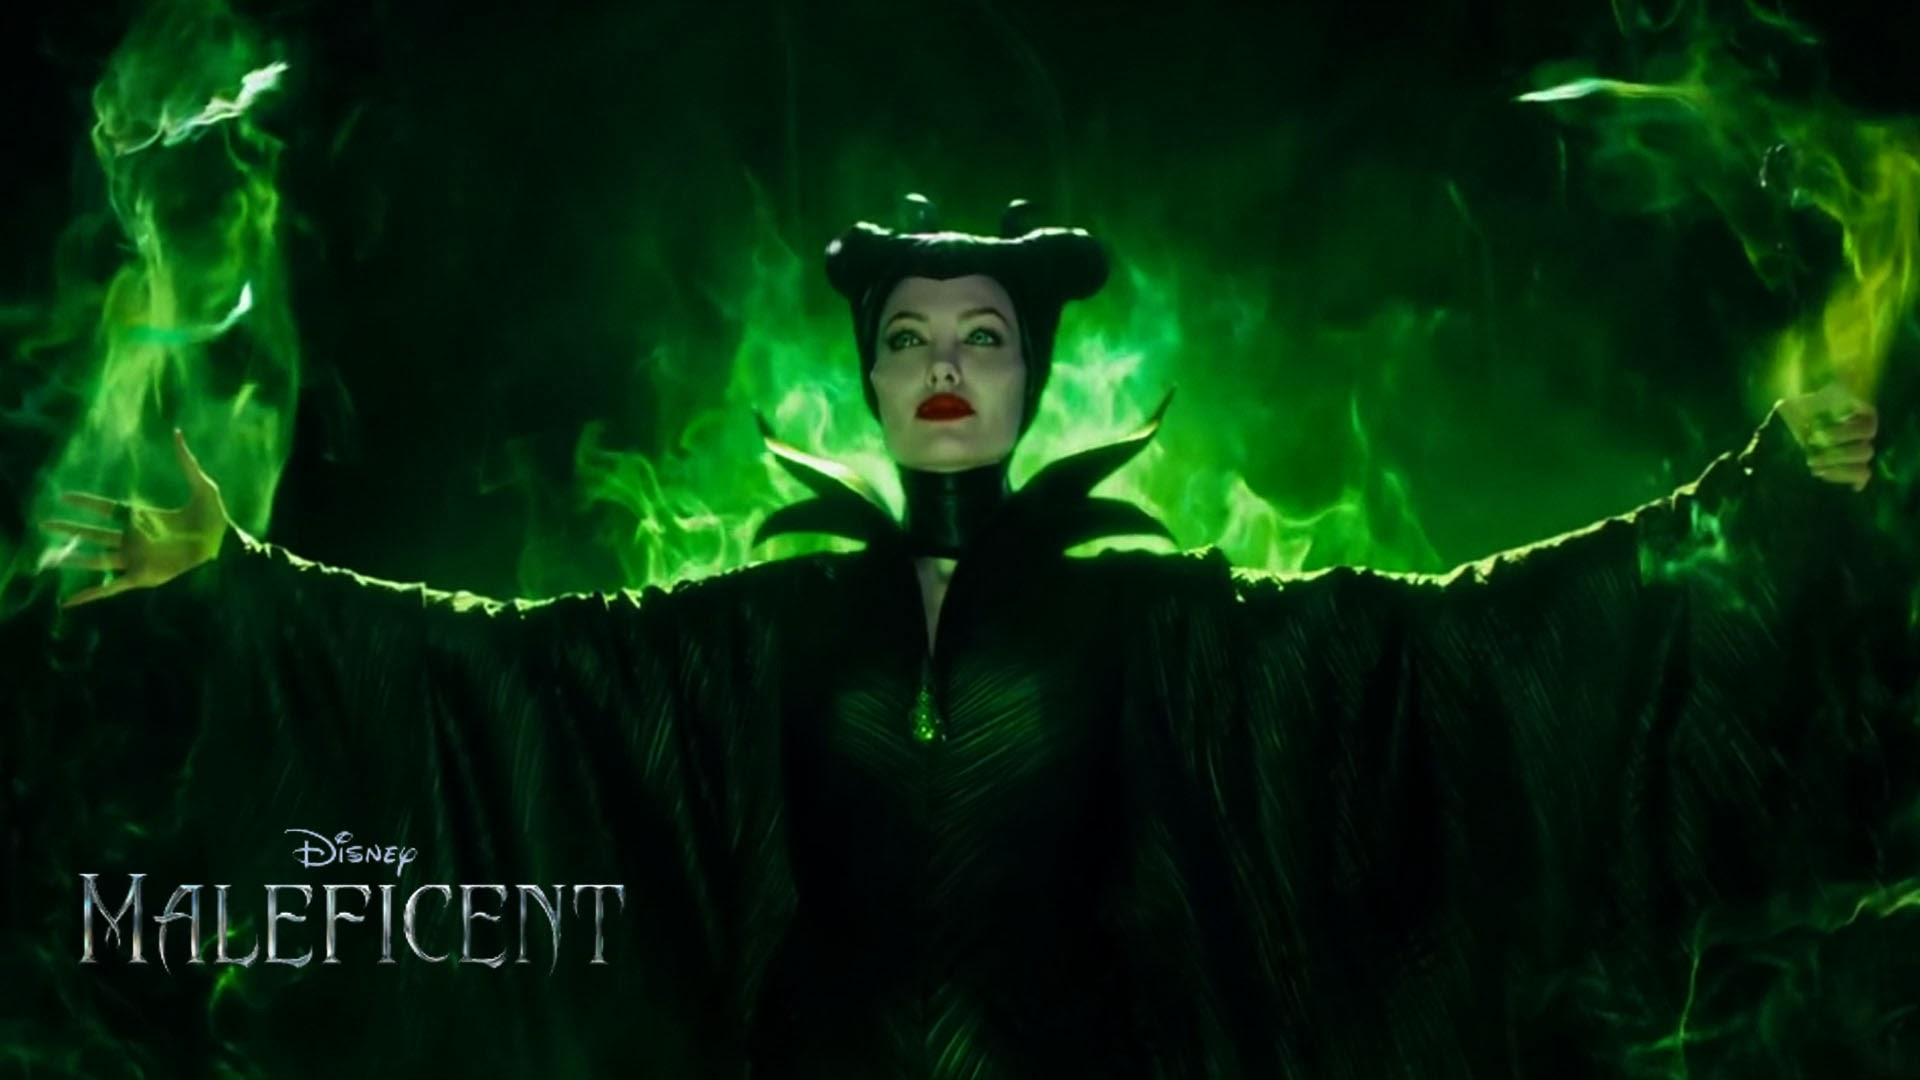 Angelina Jolie Maleficent Maleficent 2014 Photo